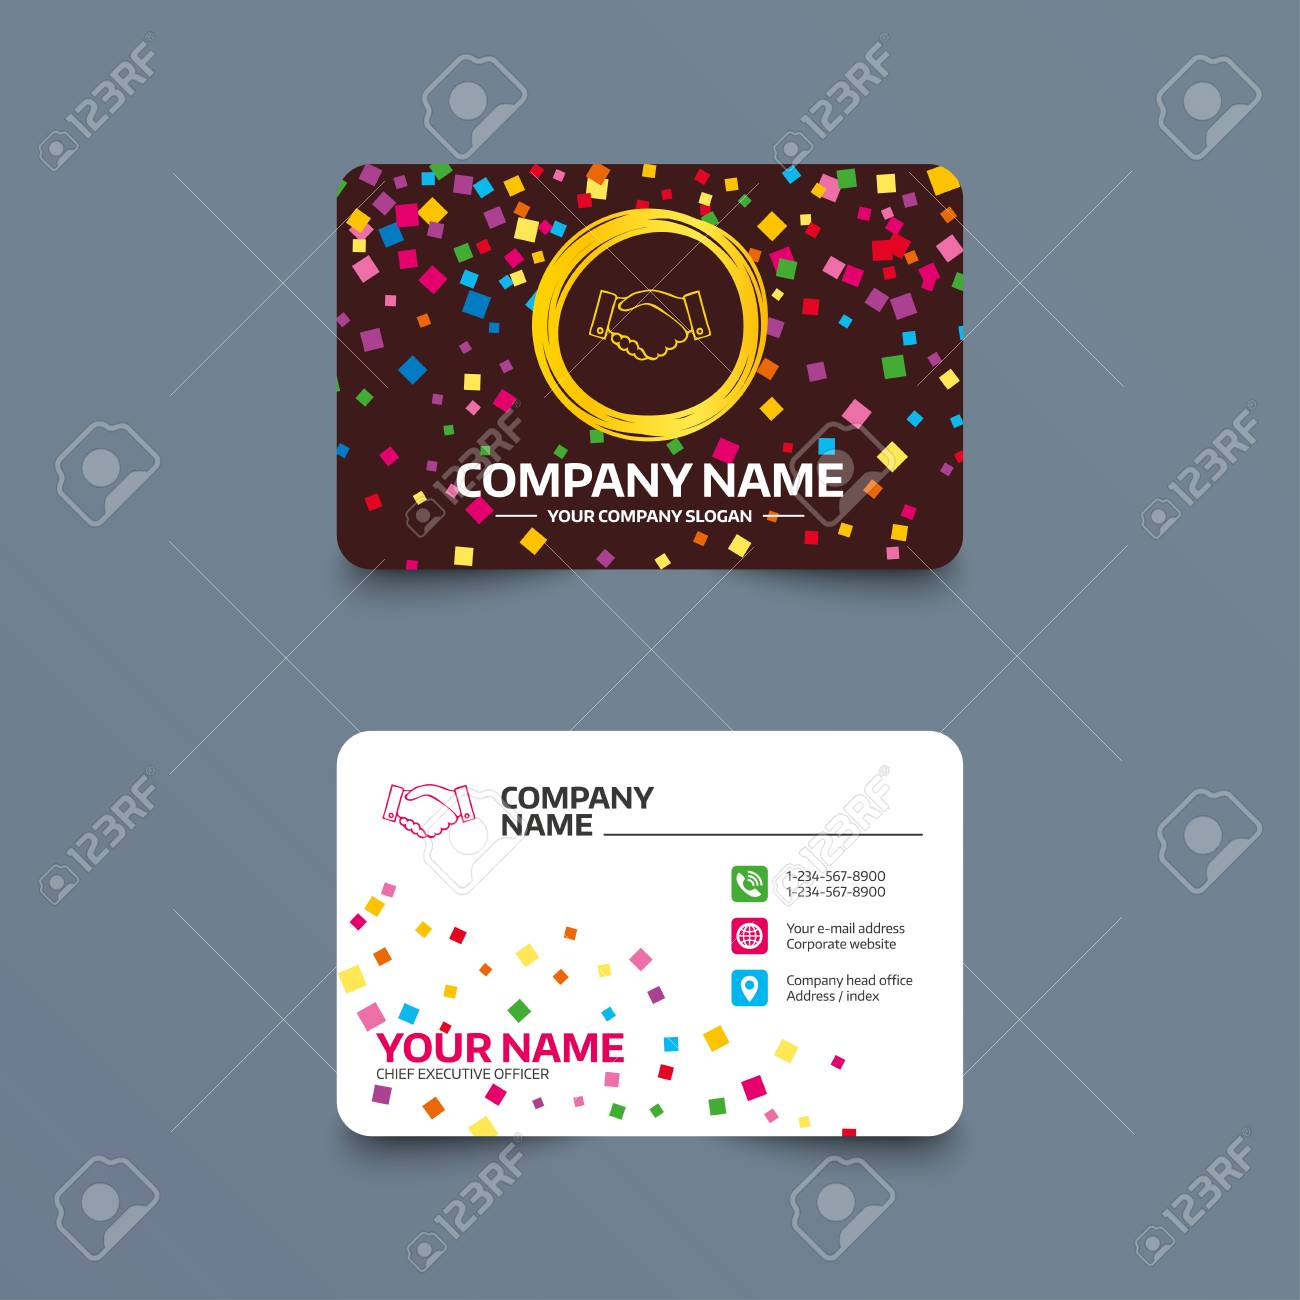 Business Card Template With Confetti Pieces Handshake Sign Icon